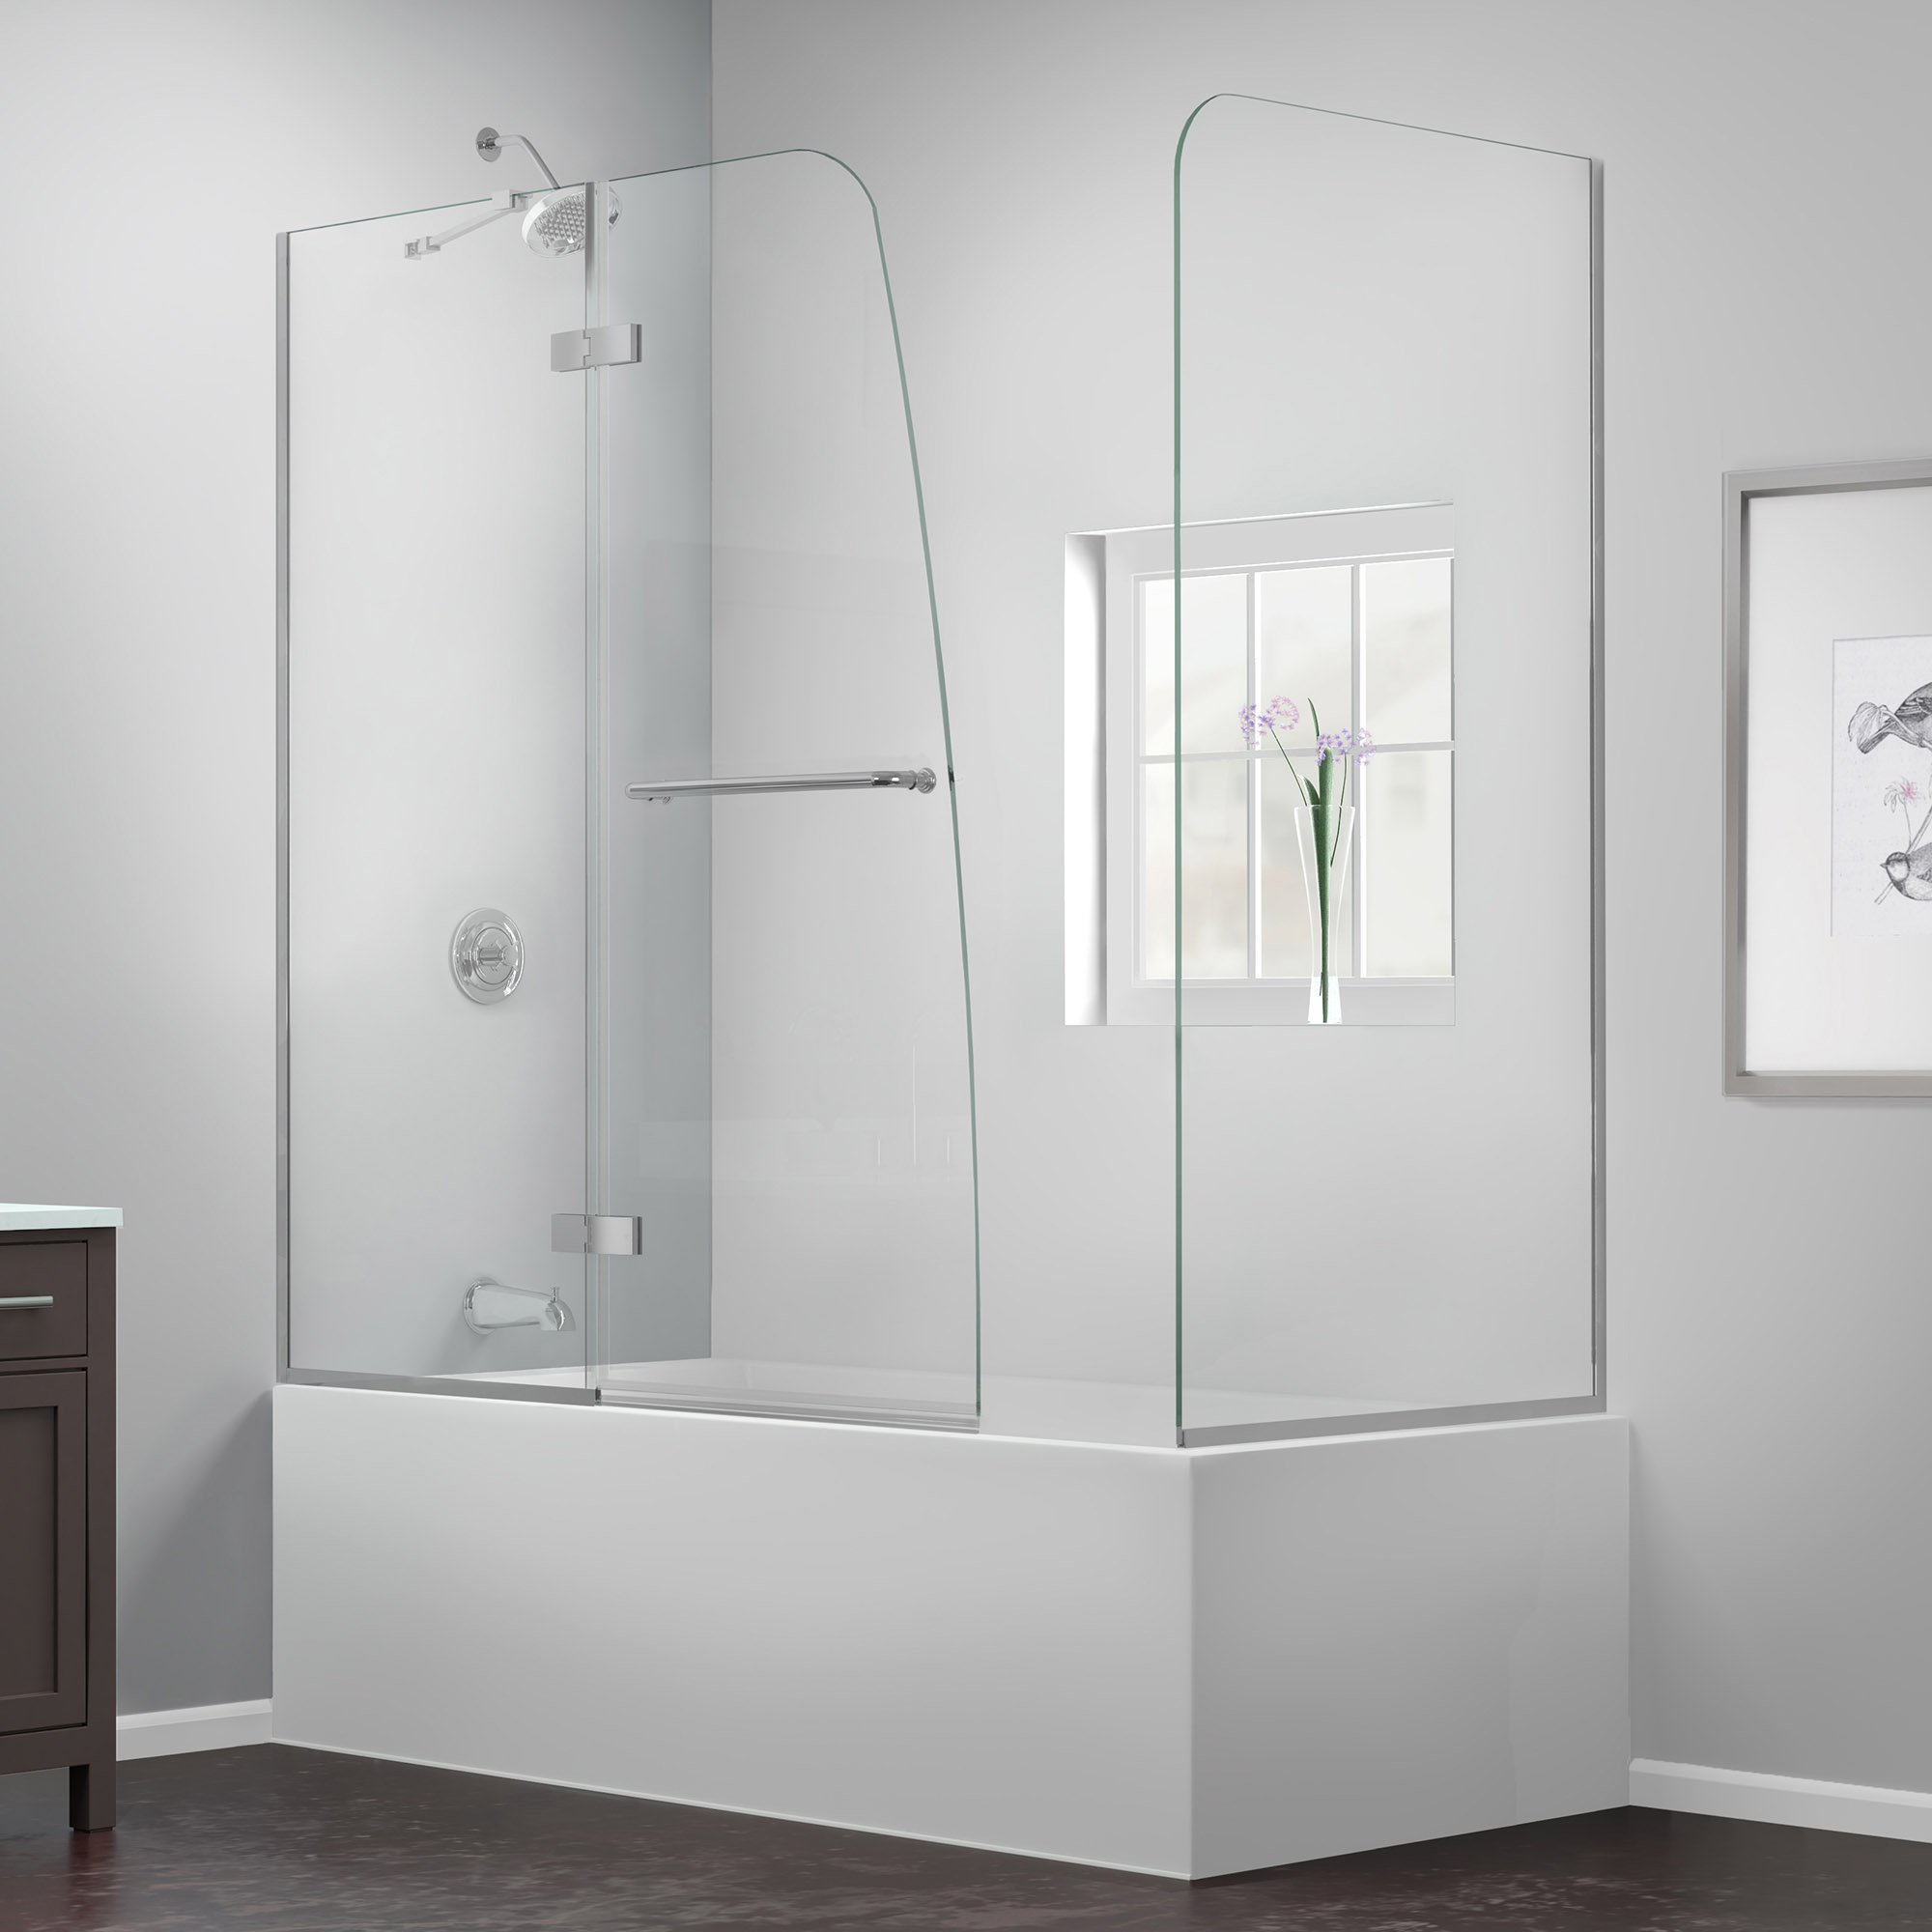 DreamLine Aqua Ultra 57-60 in. Width, Frameless Hinged Tub Door, 5/16'' Glass, Chrome Finish